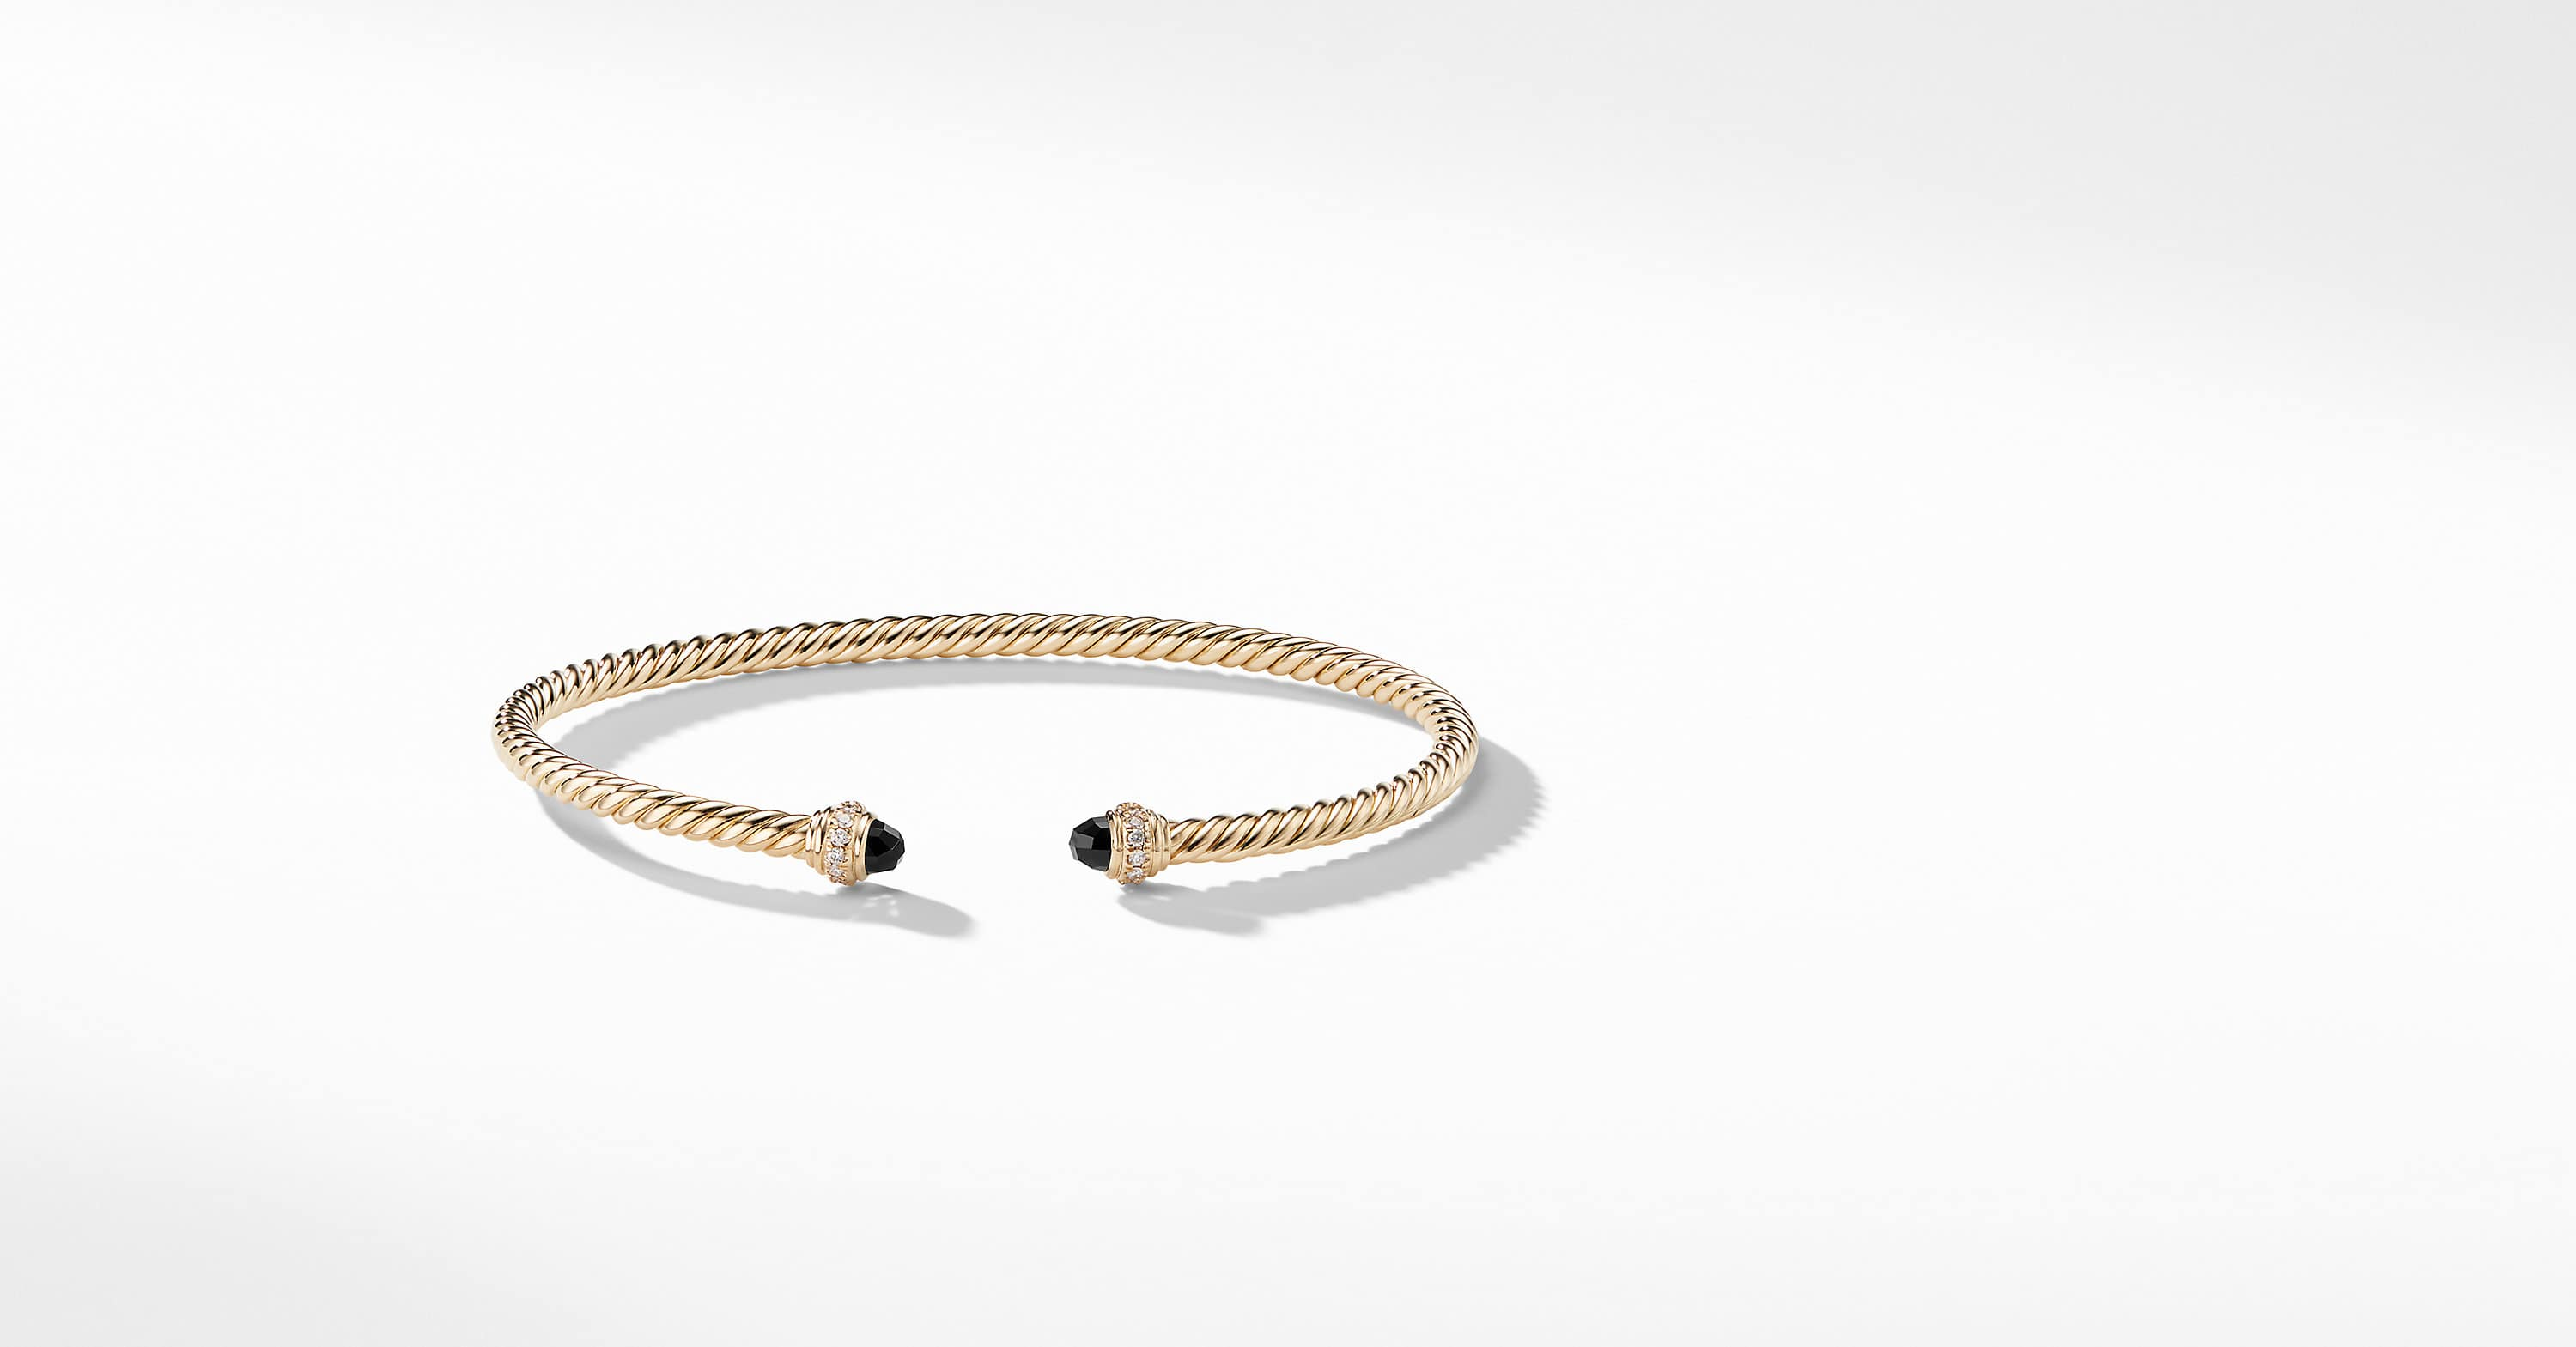 Cable Spira Bracelet with Diamonds in 18K Gold, 3mm